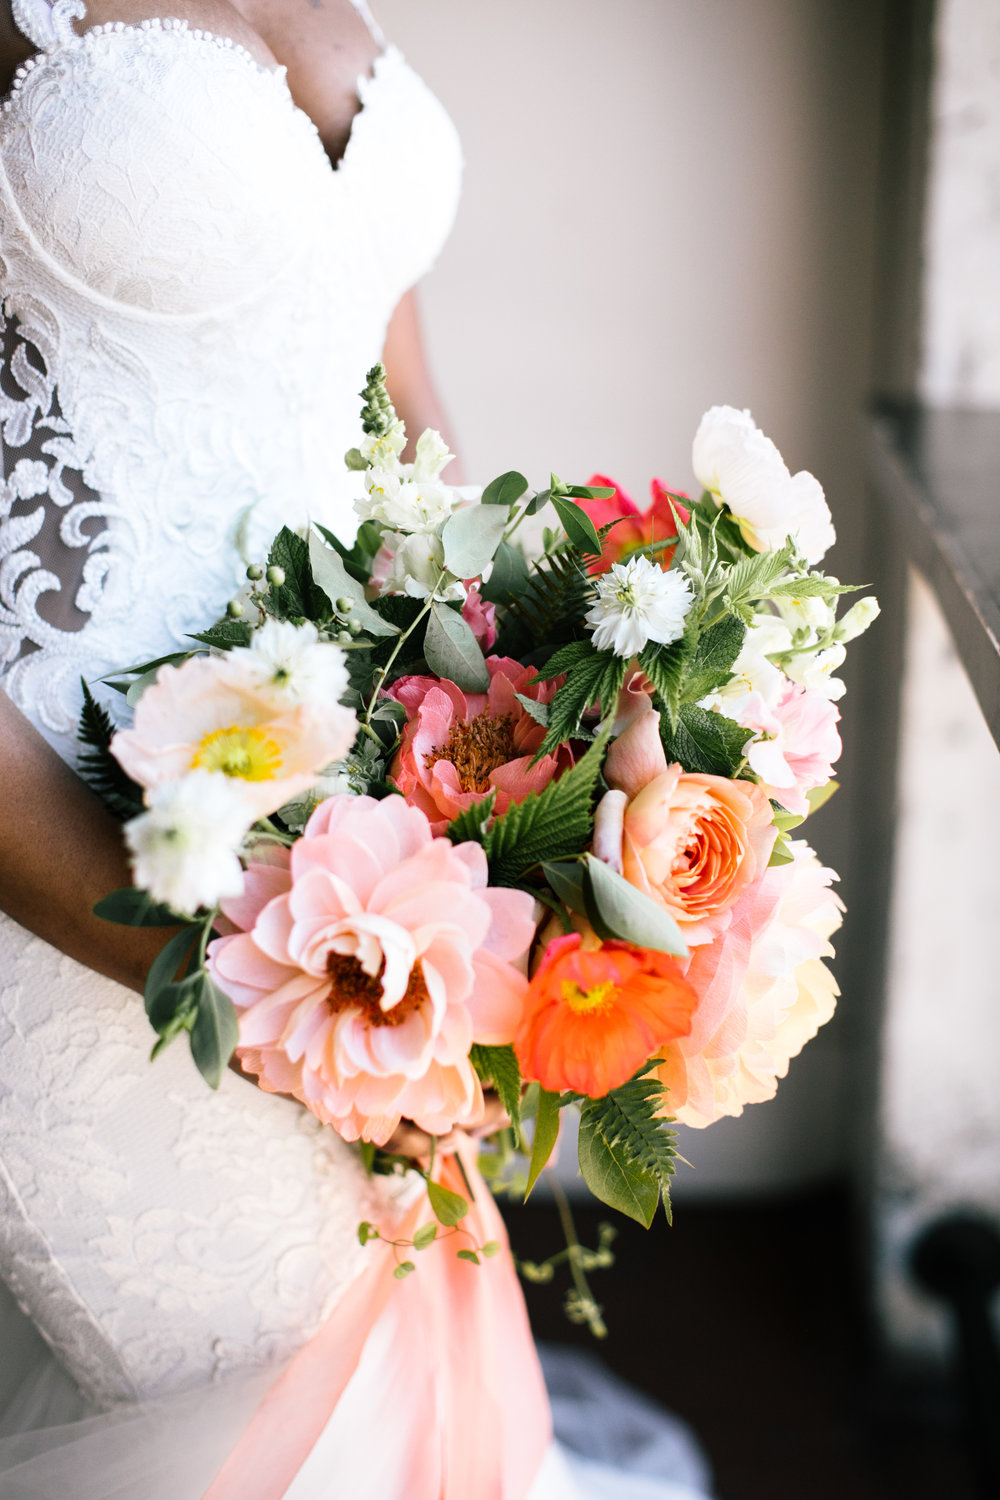 At first glance at this bouquet, what do you see? Gorgeous blooms, right? There's something extra special about this one though—it's got paper flowers, too!!!      Click to read more